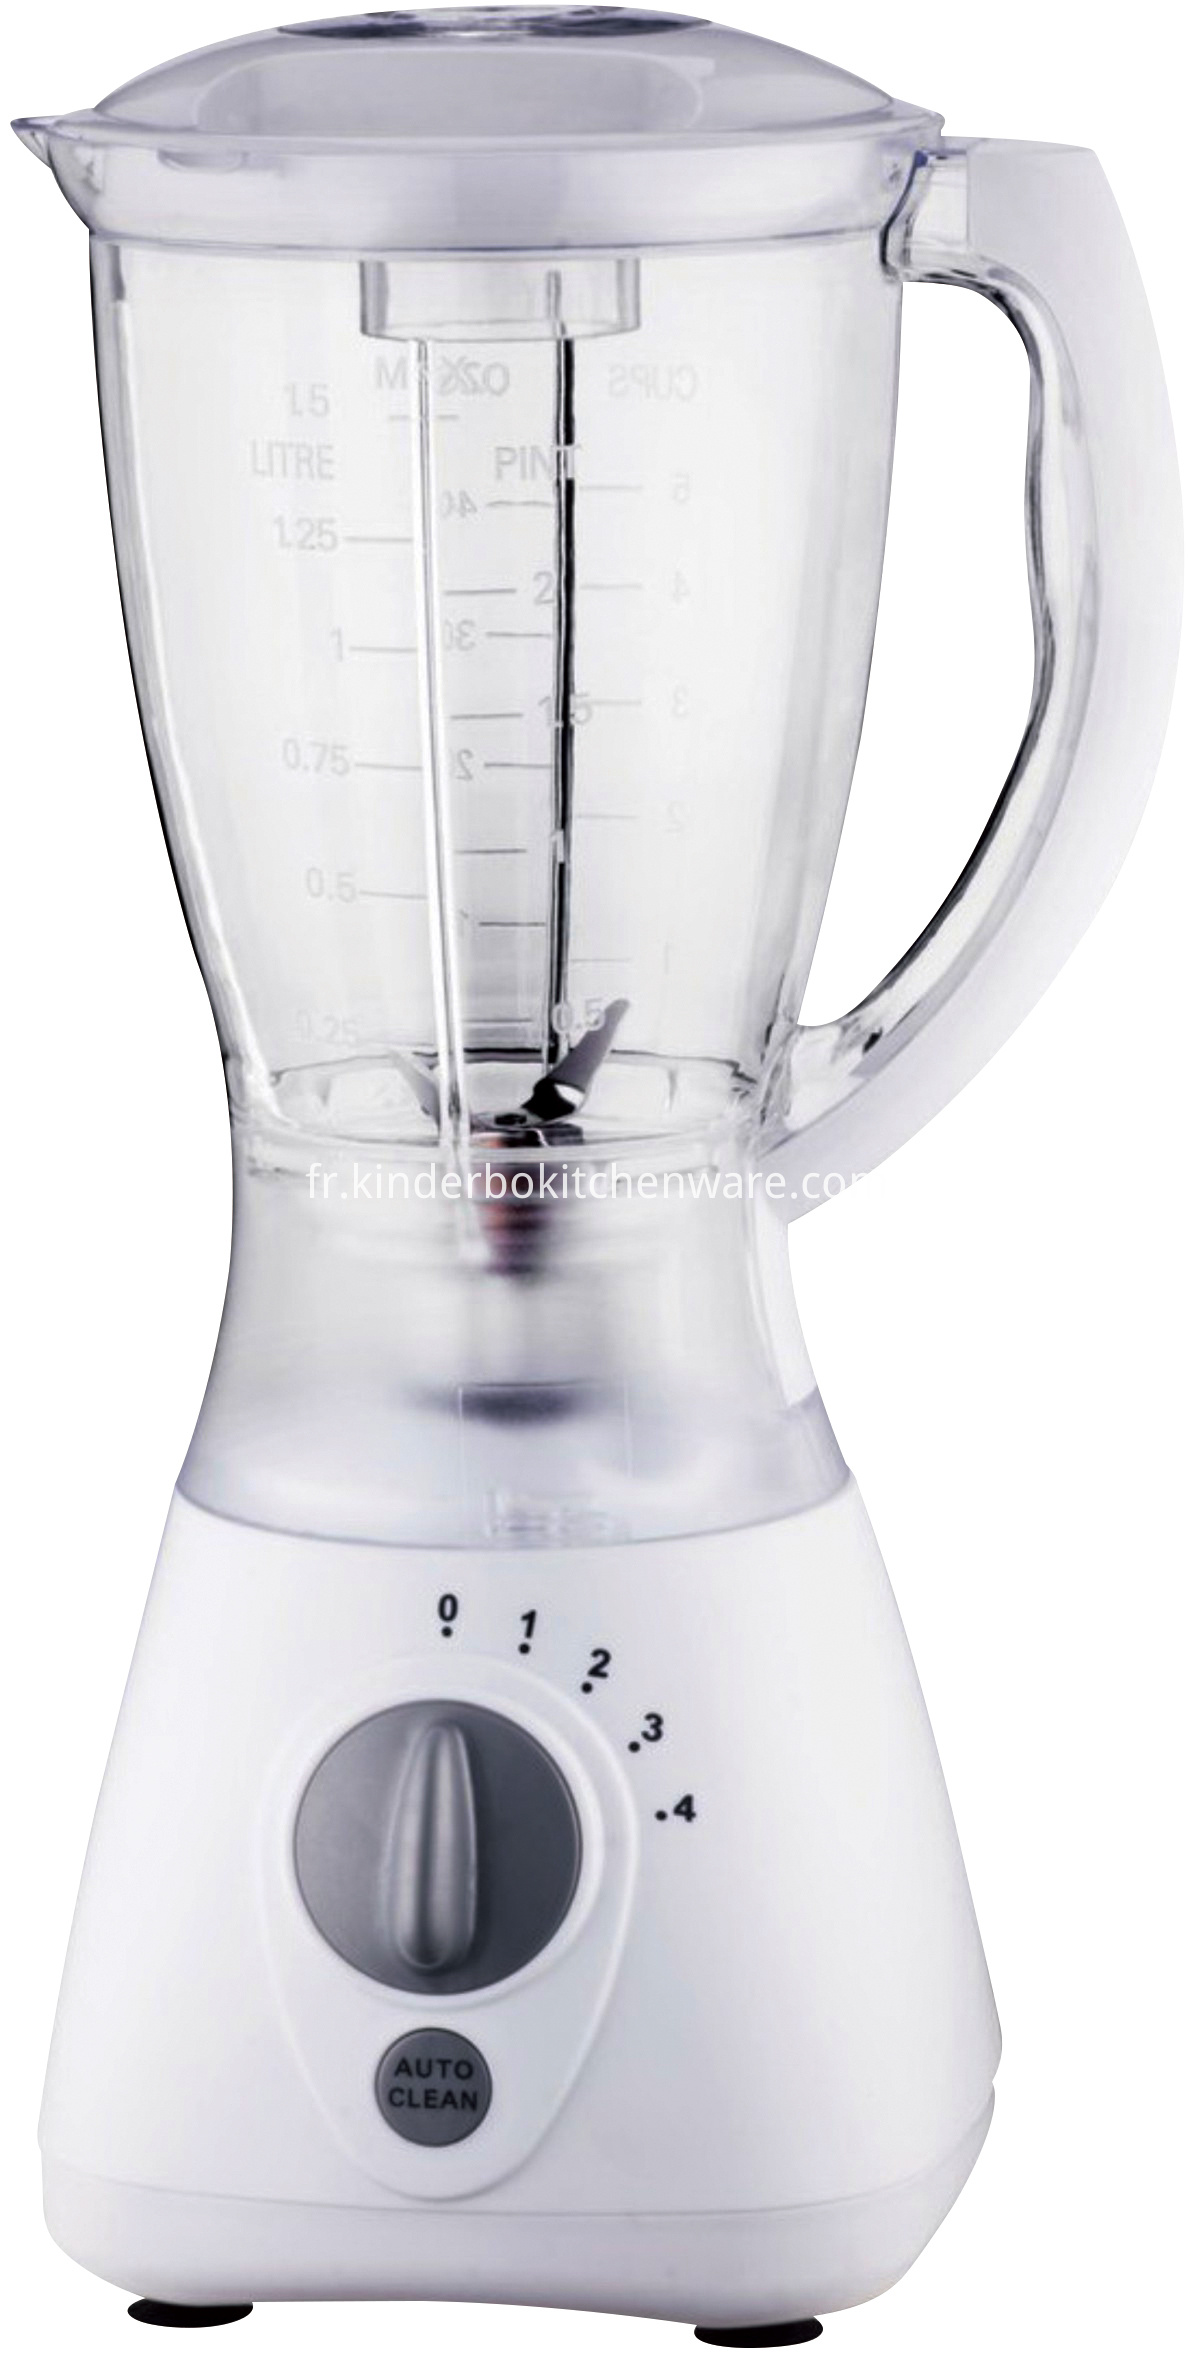 Juicer Blender with 4 Speeds and Pulse Function